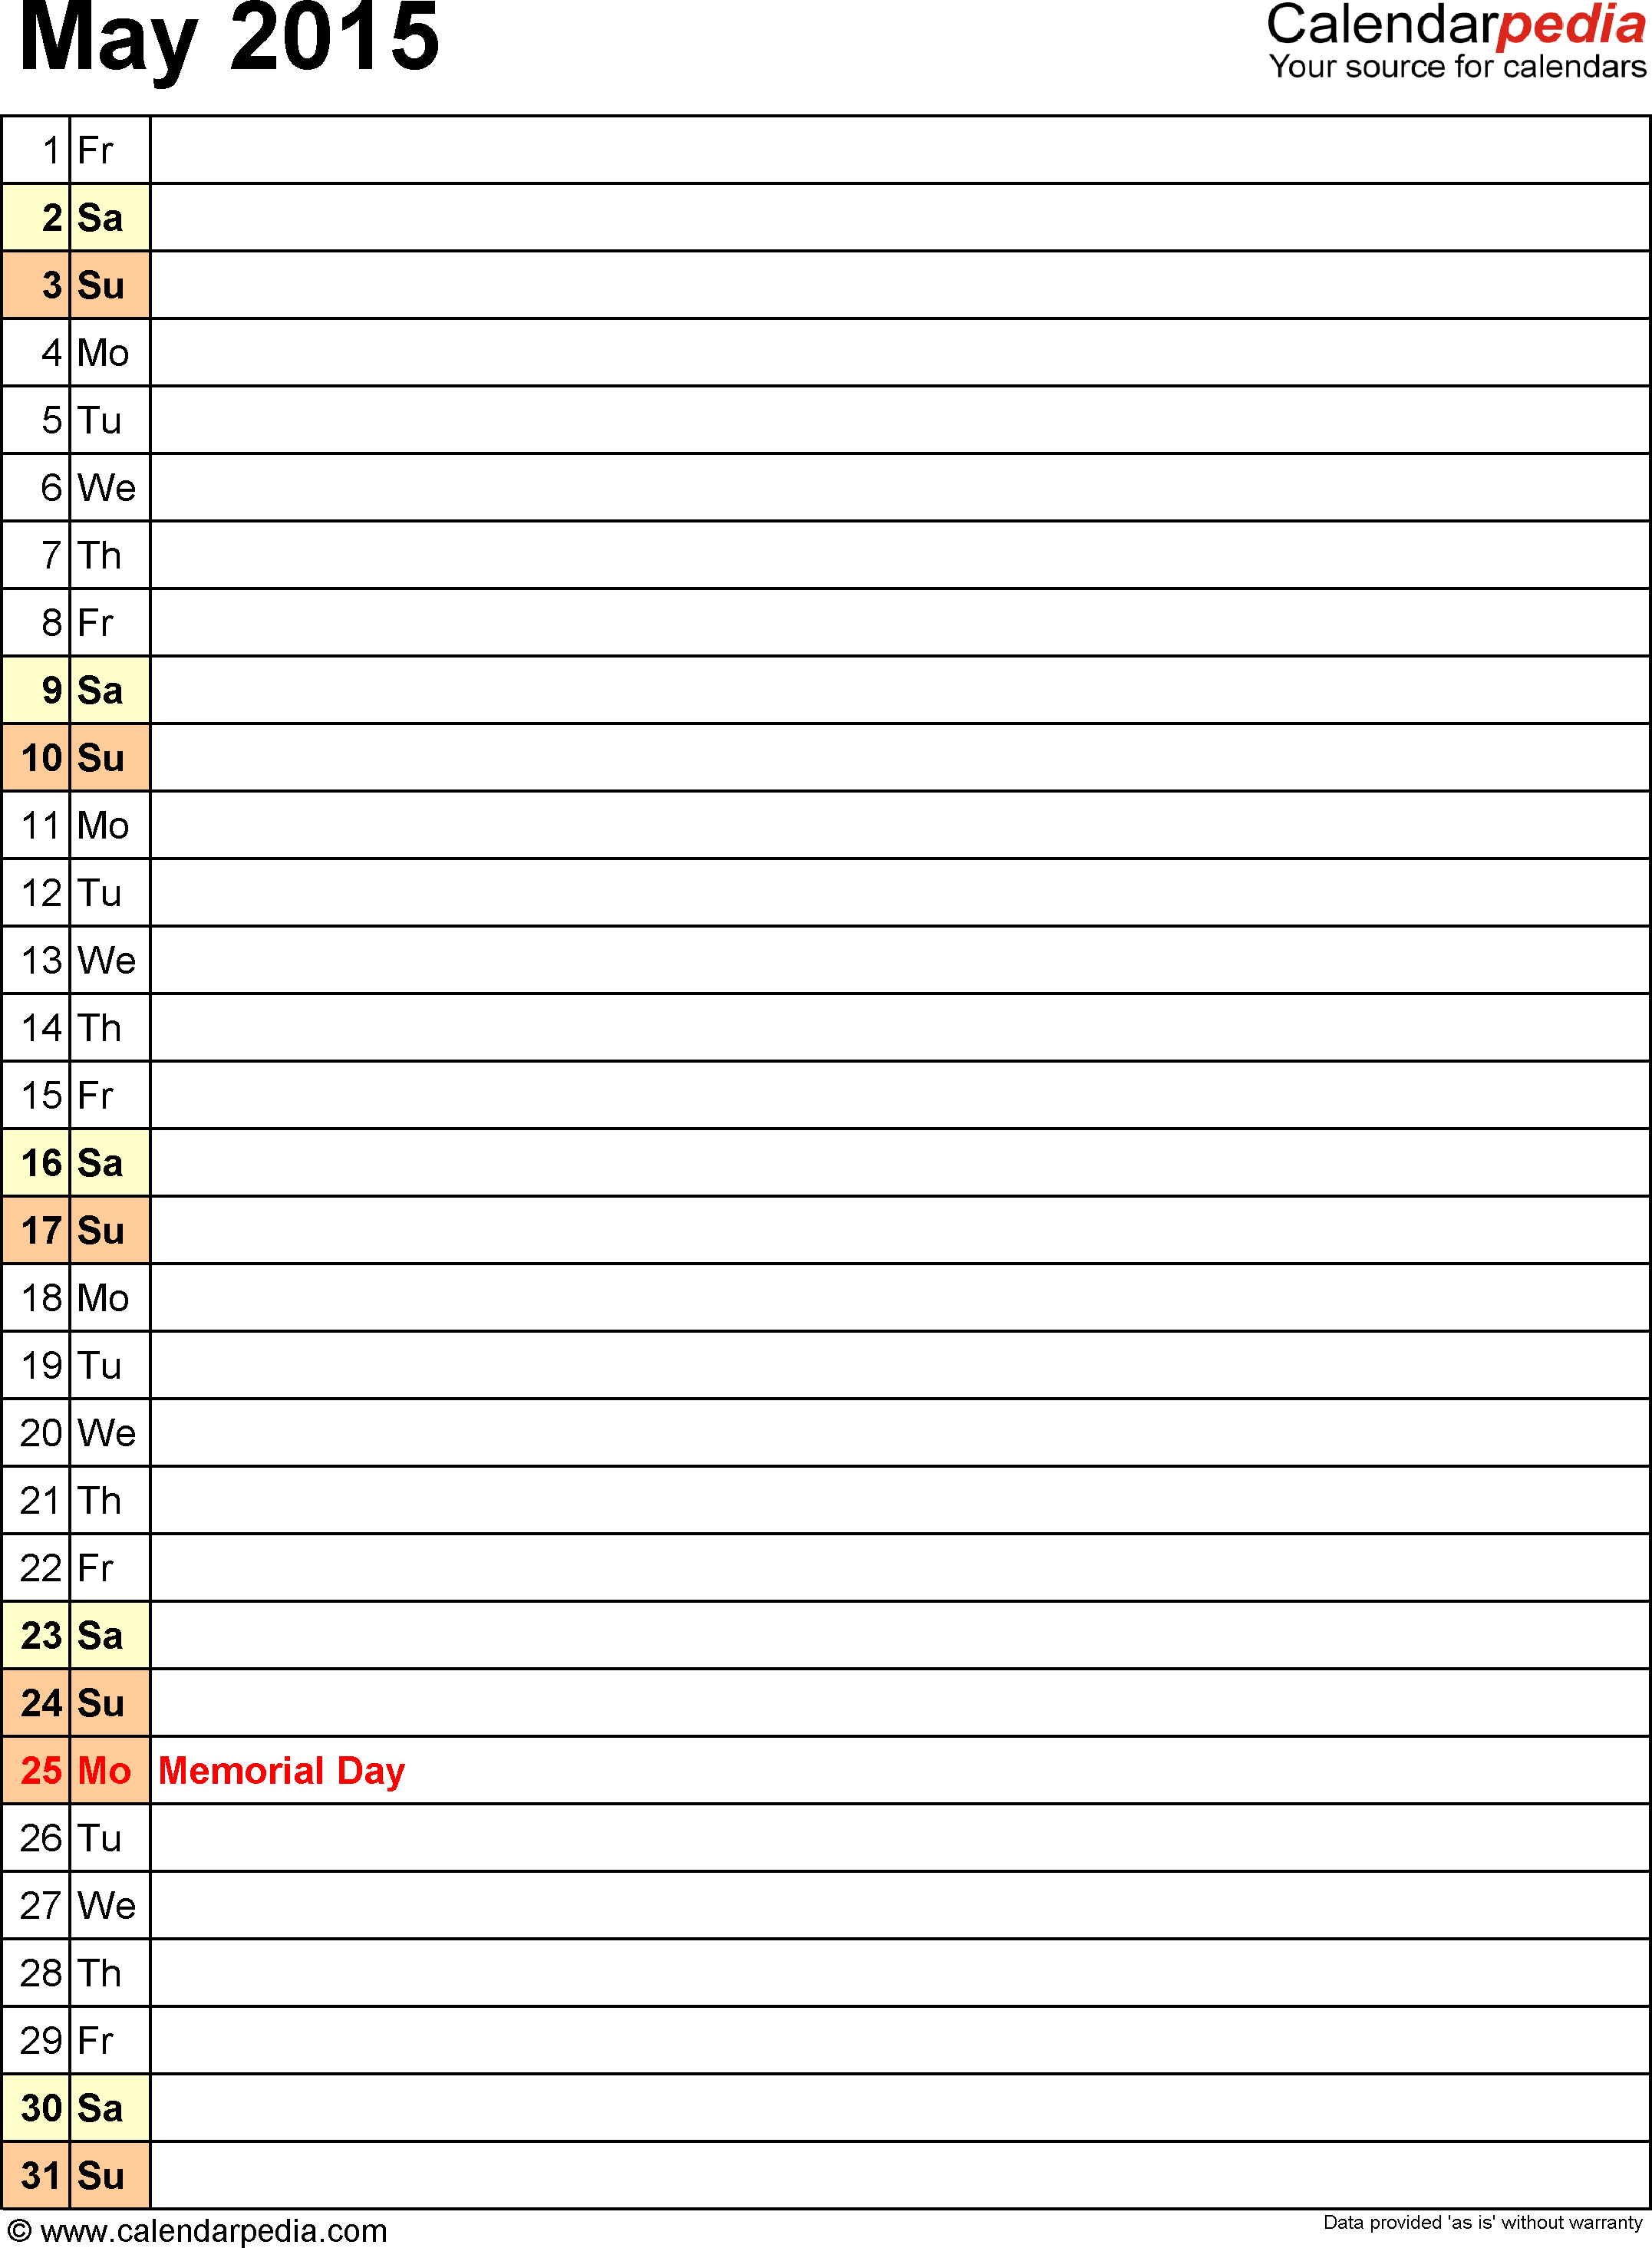 May 2015 calendar, portrait orientation, list view (days aligned vertically), available as printable templates for Word, Excel and PDF